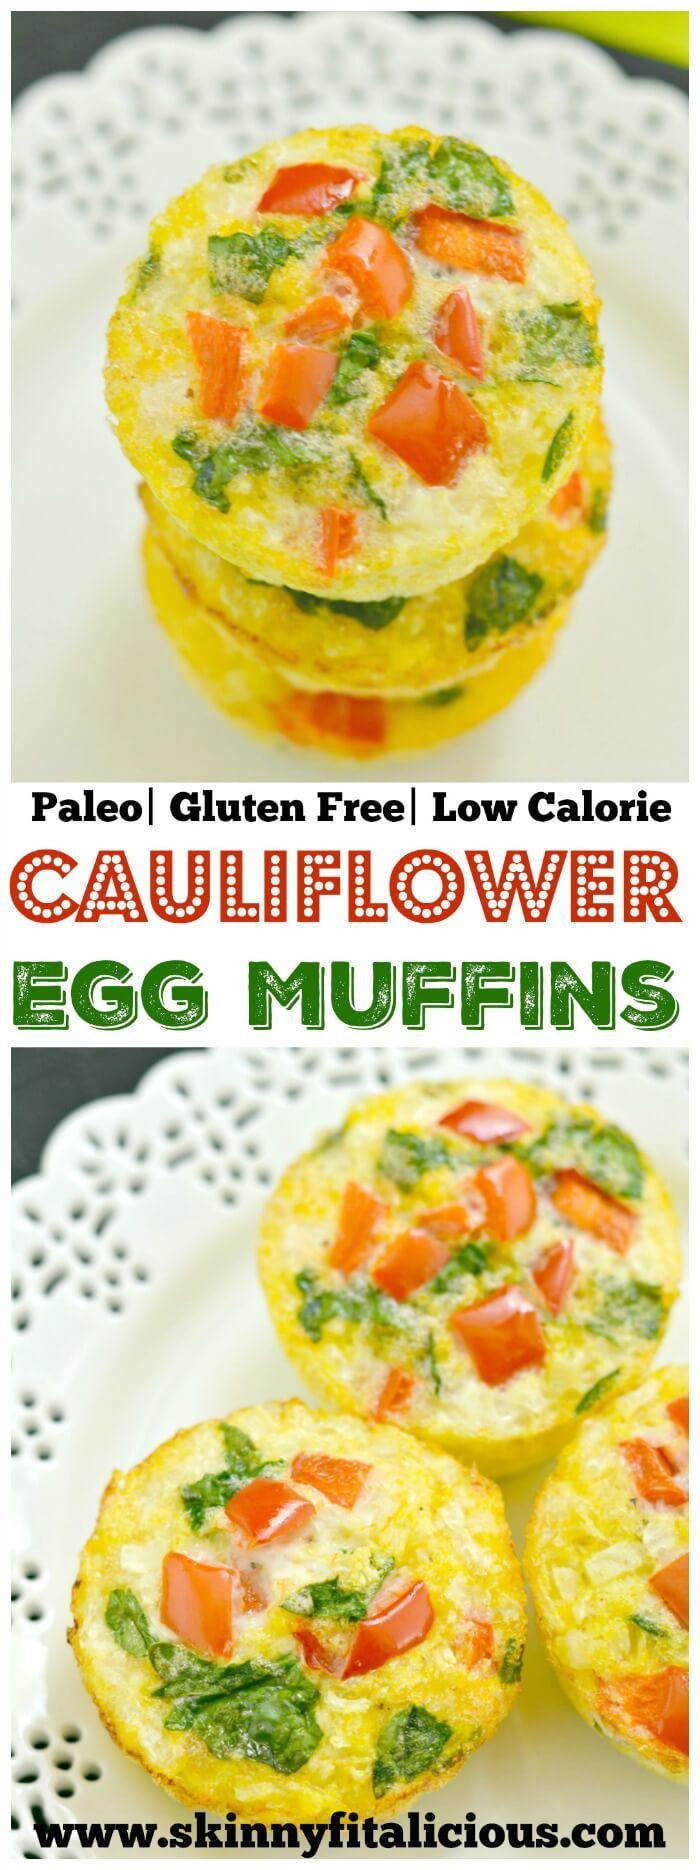 Healthy Breakfast Muffins Low Calorie  201 best images about 300 calorie low carb meals on